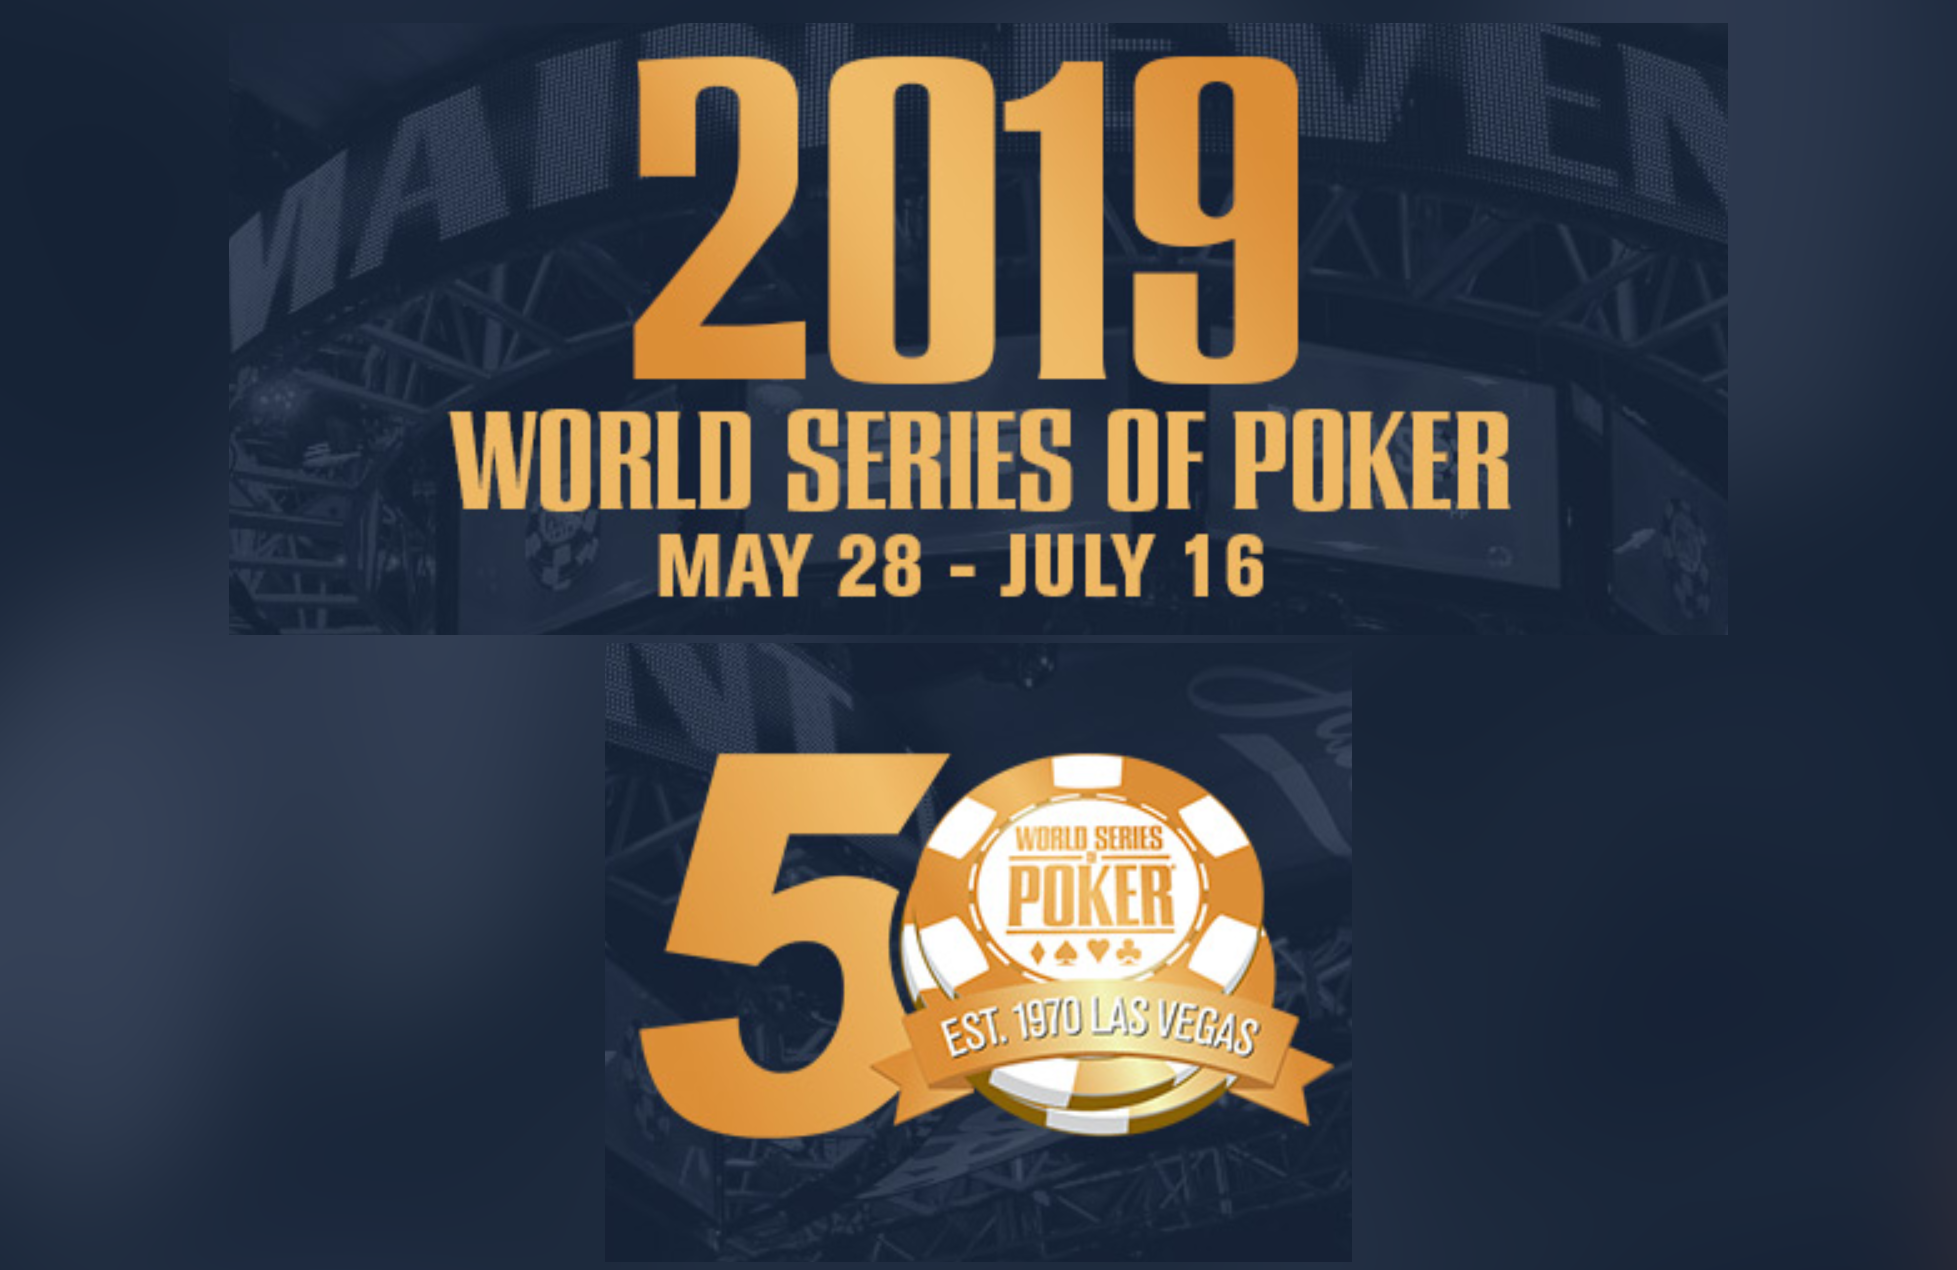 WSOP 2019: More New Events, Bigger Starting Stacks, and